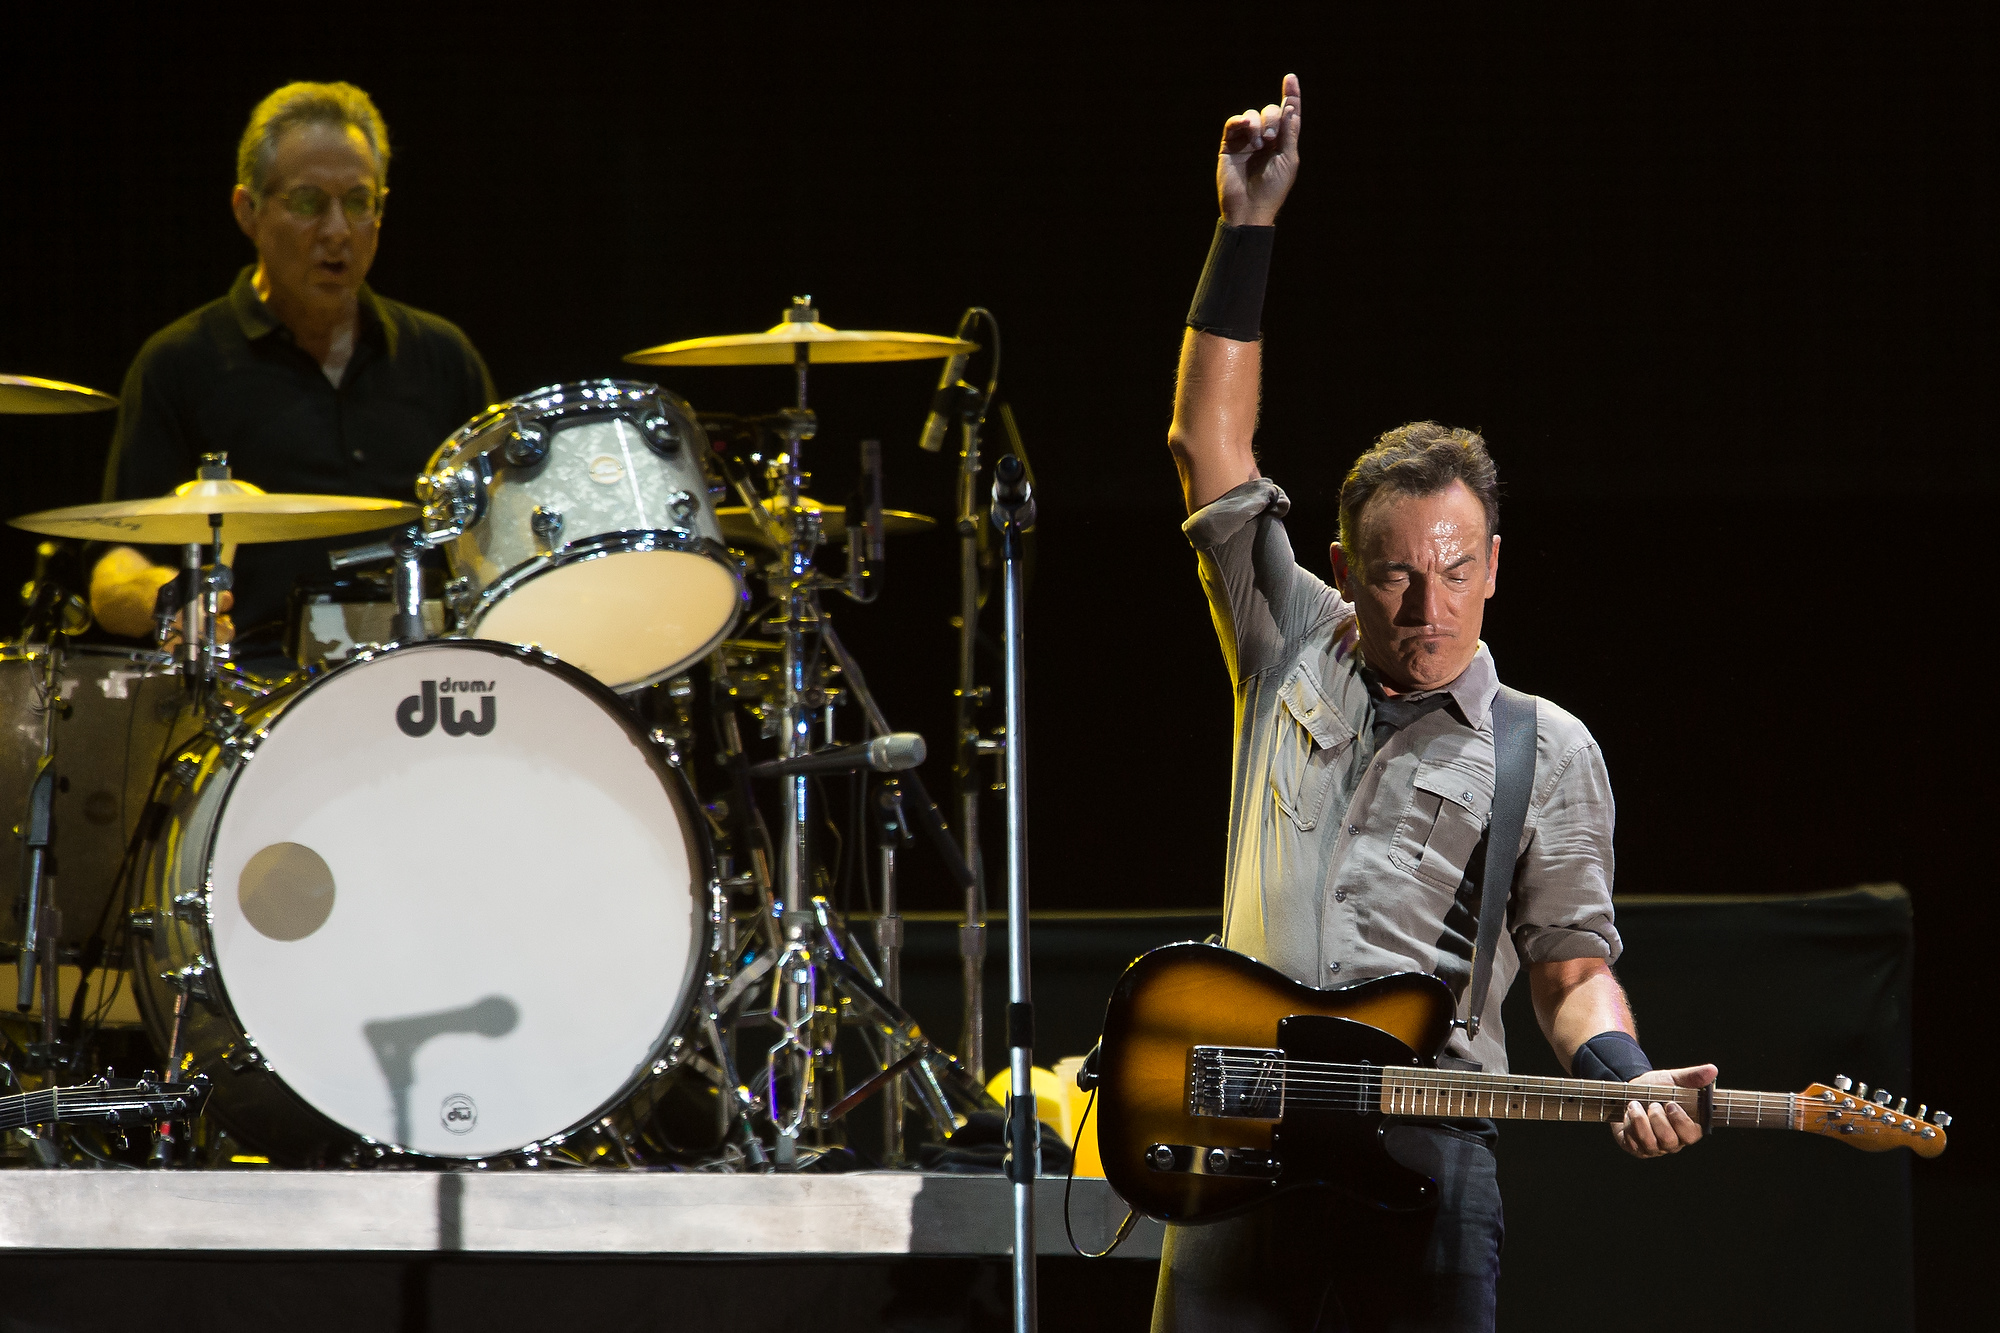 Bruce Springsteen performs on stage during a concert in the Rock in Rio Festival on September 21, 2013 in Rio de Janeiro, Brazil. (Photo: Buda Mendes/Getty Images)